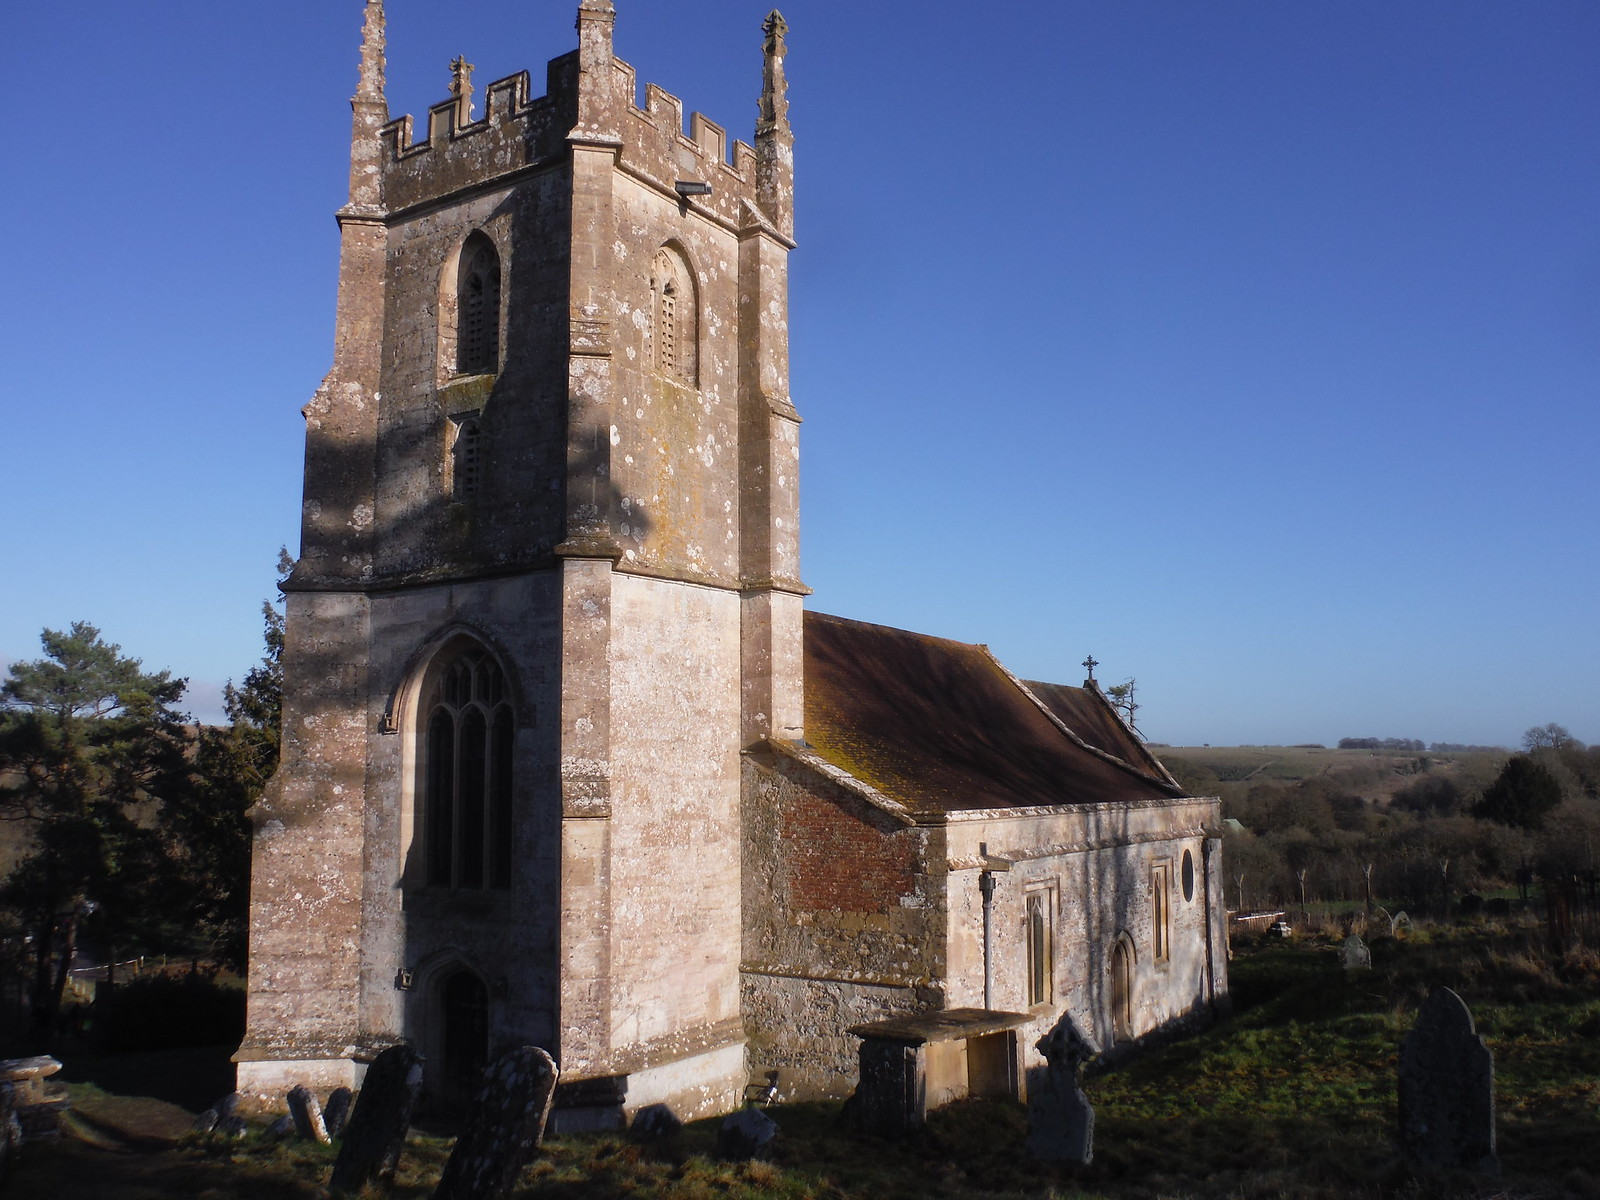 St. Giles, Imber Church SWC Walk 286 Westbury to Warminster (via Imber Range)